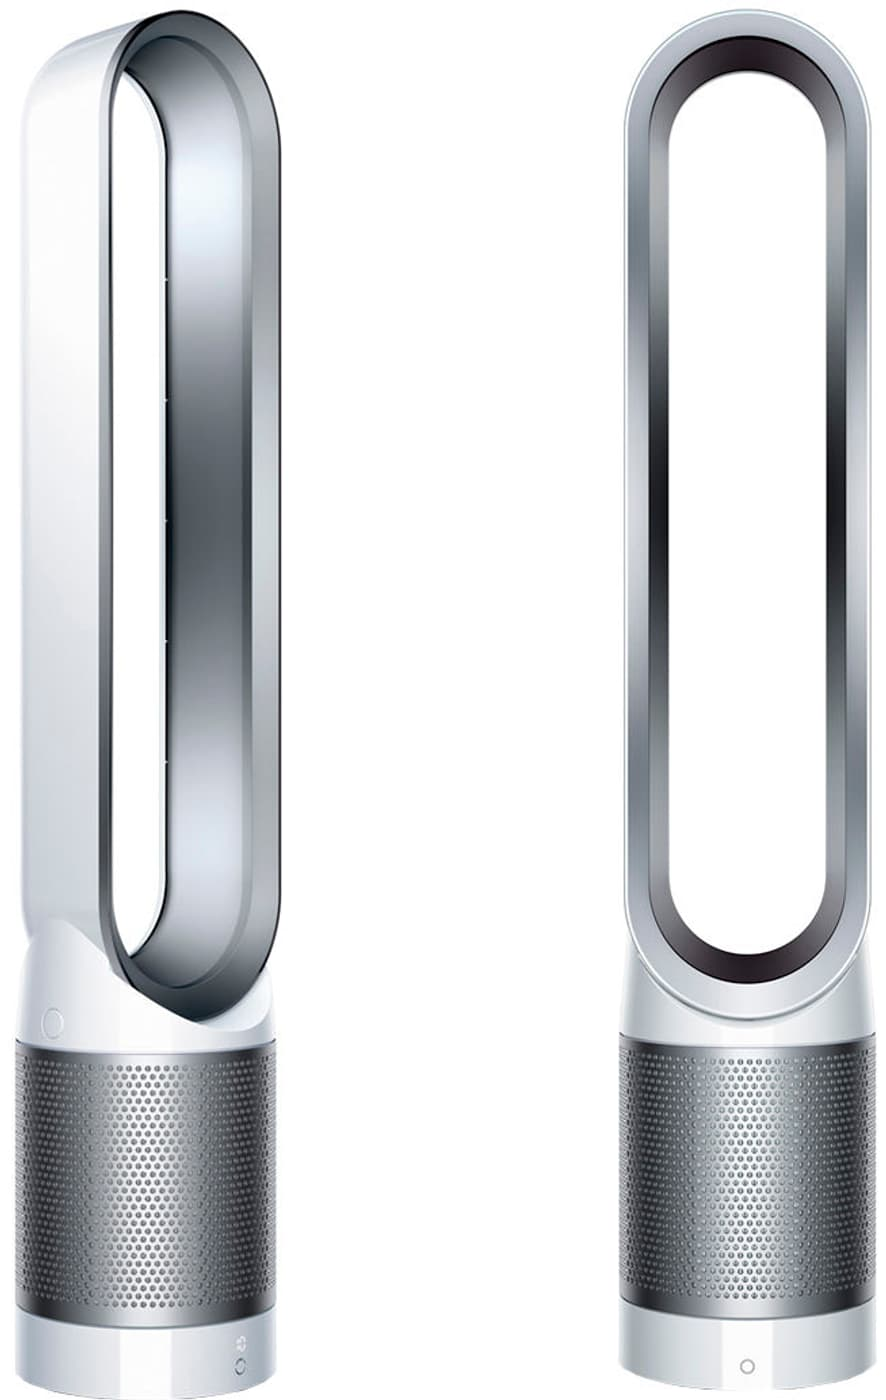 dyson luftreiniger pure cool link tower migros. Black Bedroom Furniture Sets. Home Design Ideas